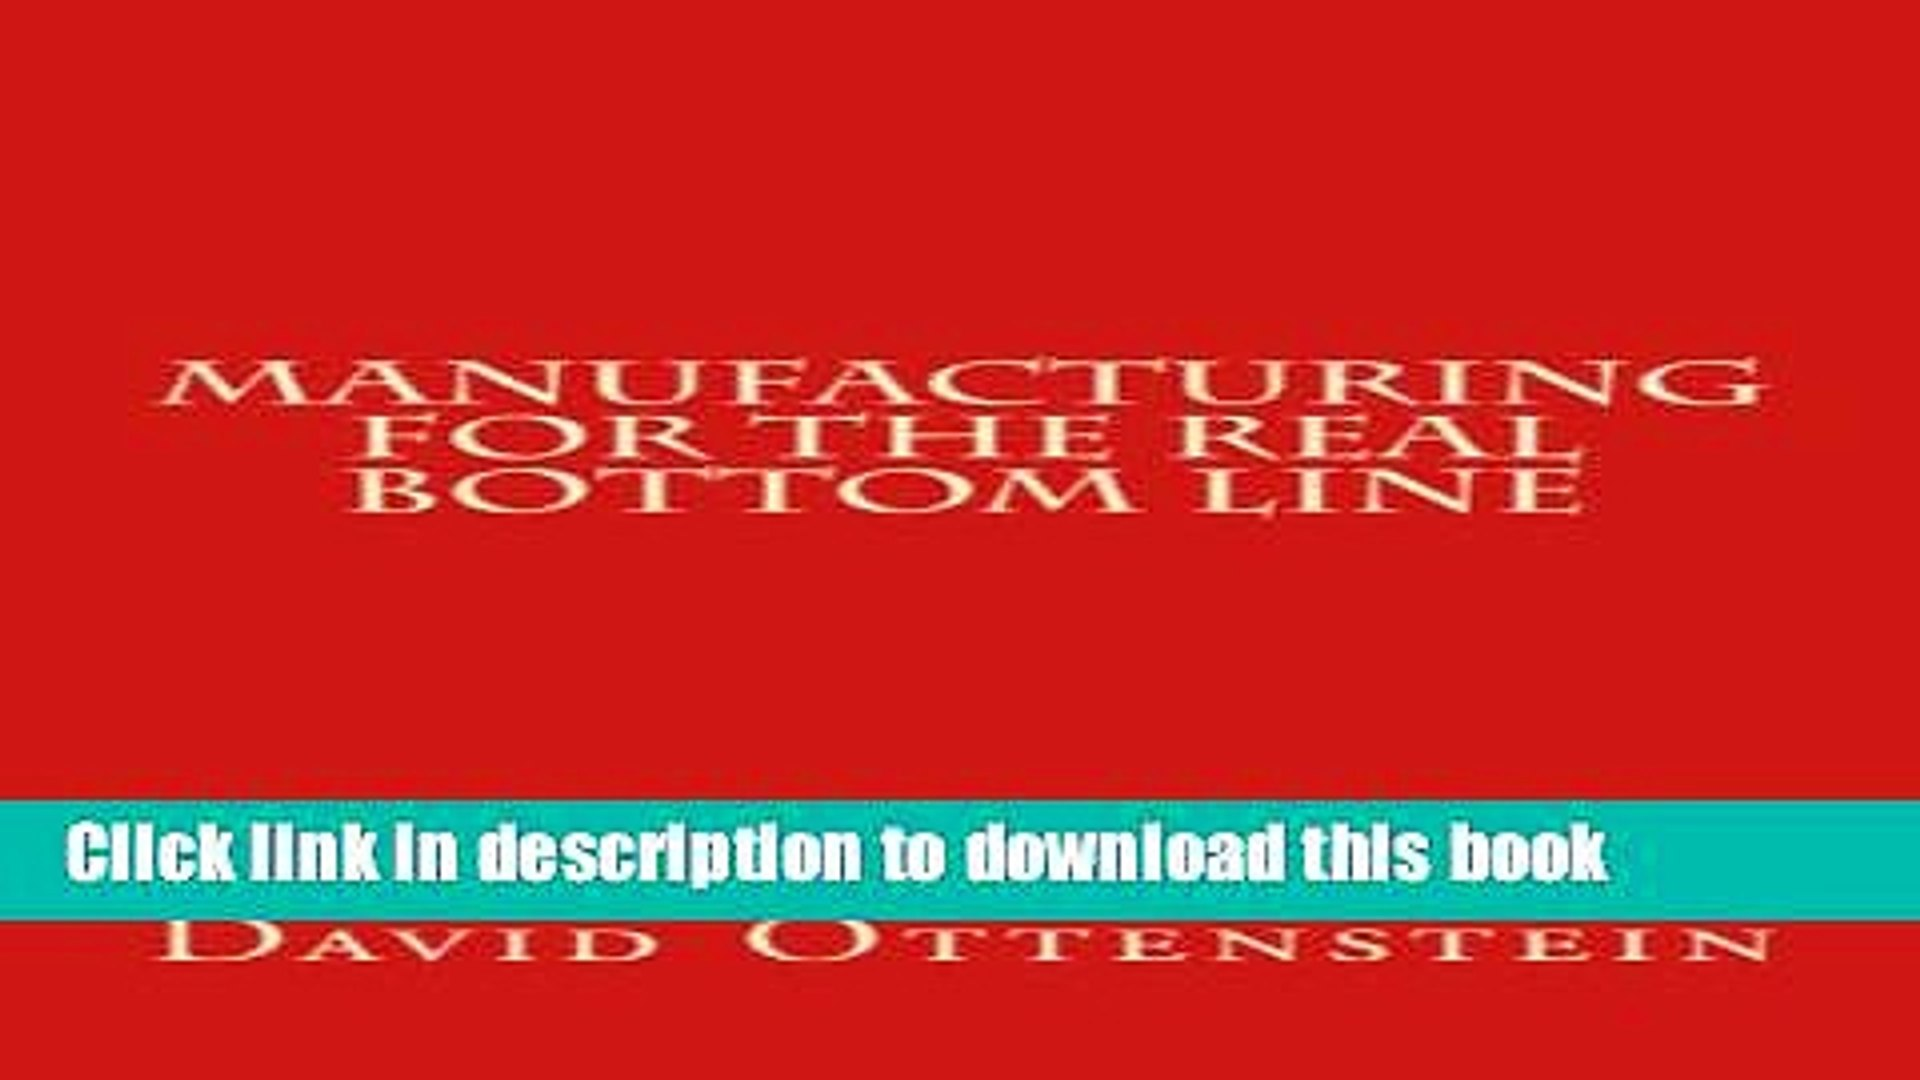 [Read PDF] Manufacturing For The Real Bottom Line Ebook Free